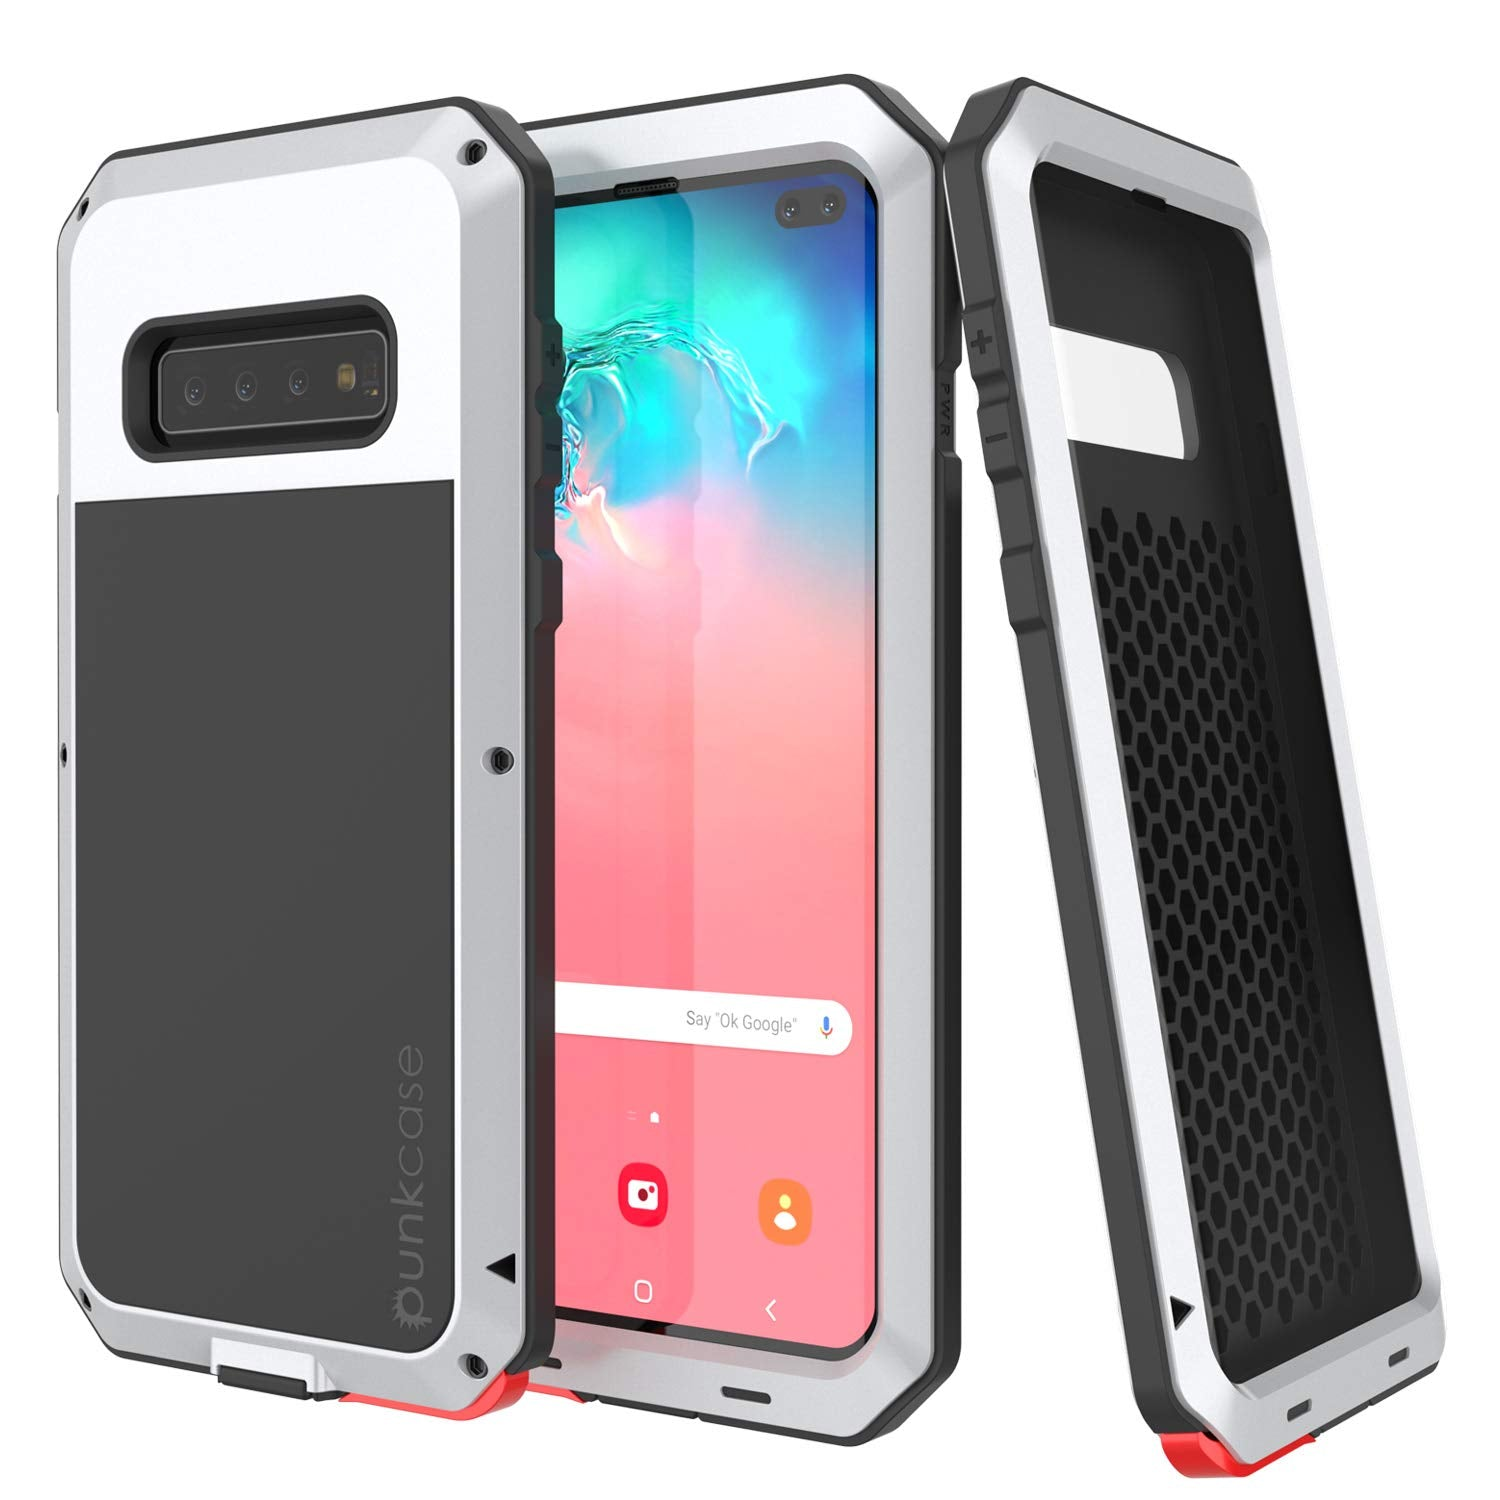 Galaxy S10+ Plus Metal Case, Heavy Duty Military Grade Rugged Armor Cover [White]